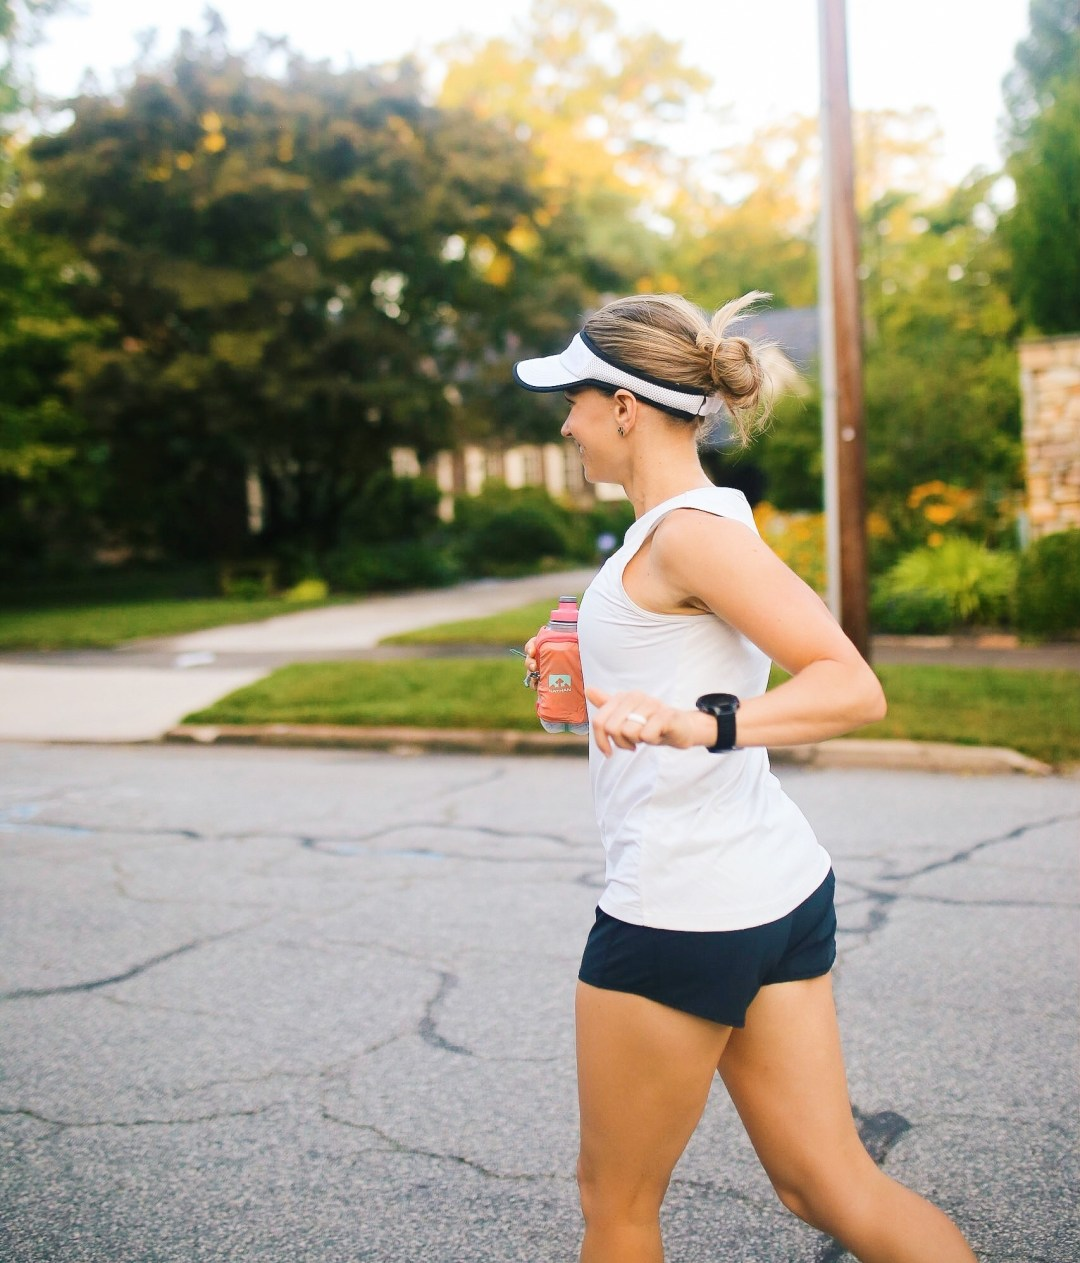 ideas for running in the heat